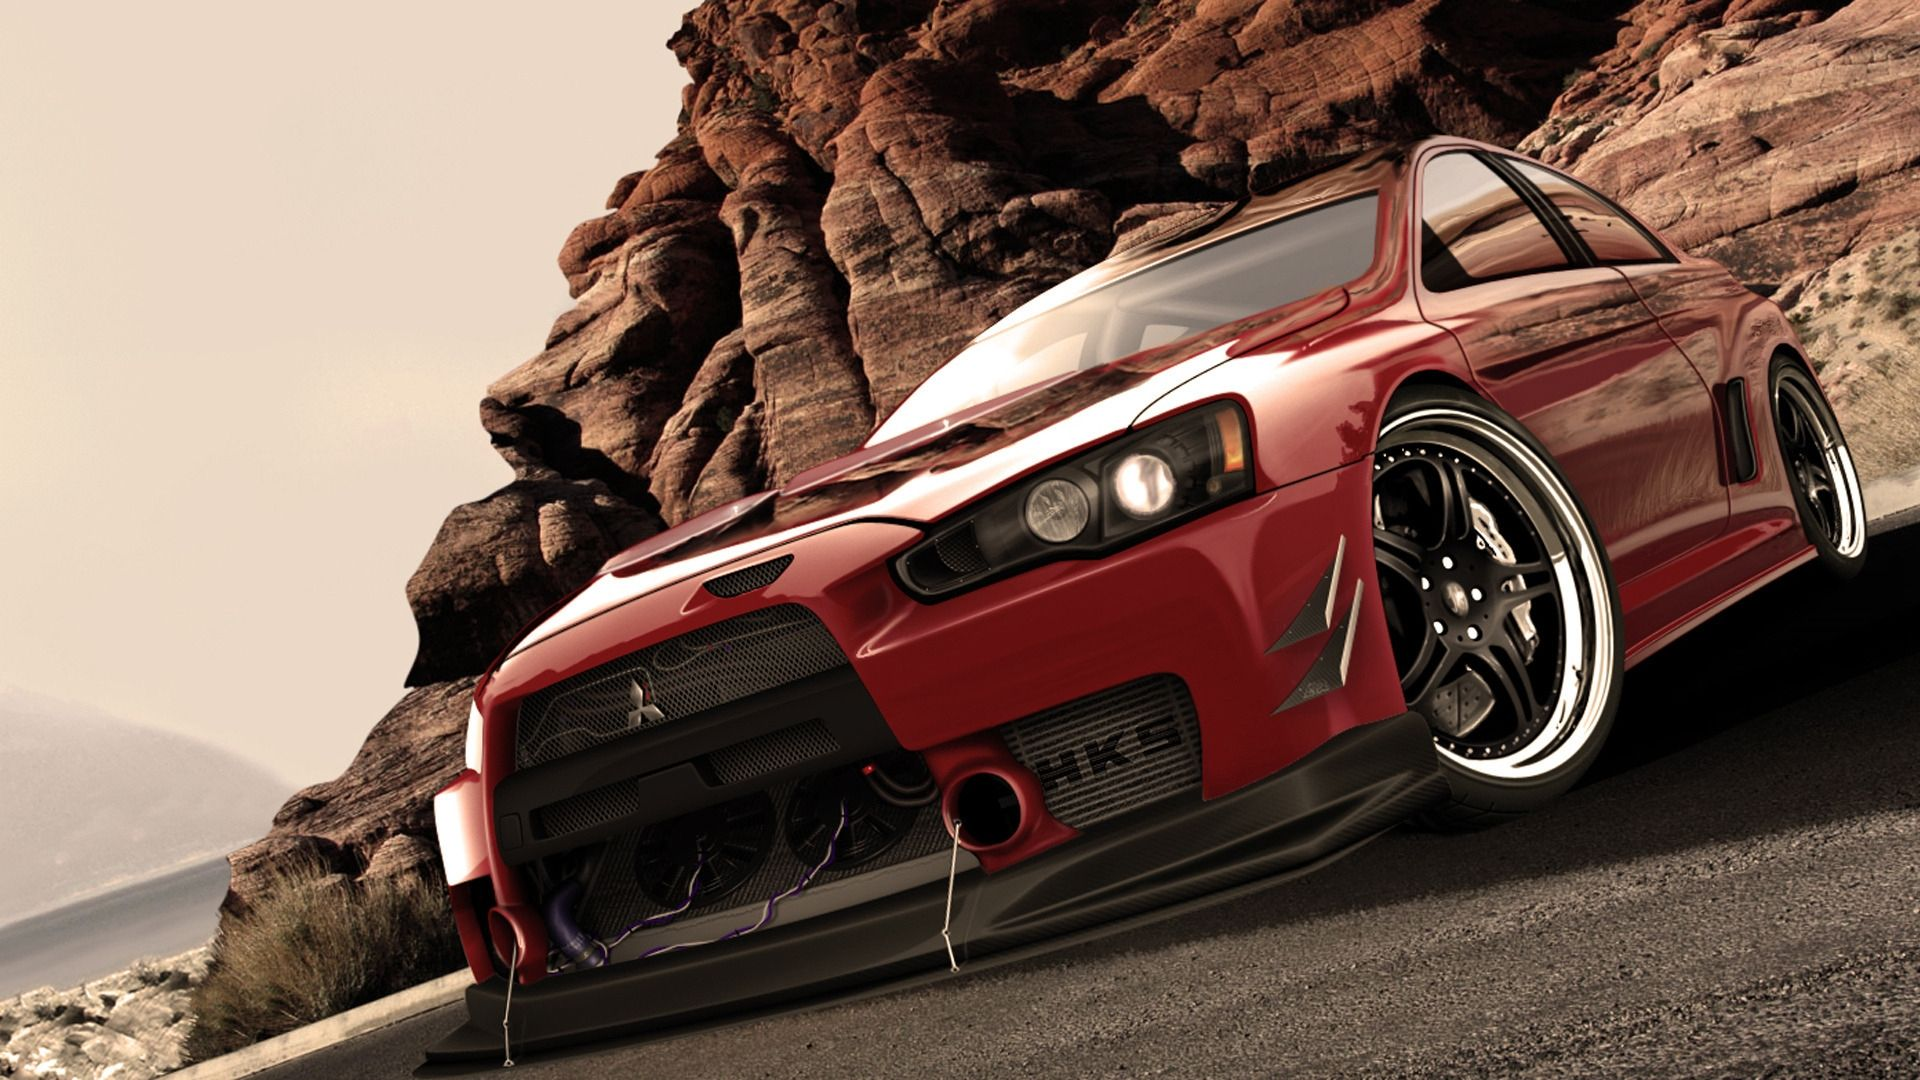 Fast And Furious Cars Wallpapers Hd Mitsubishi Lancer Evolution Mitsubishi Lancer Mitsubishi Evo